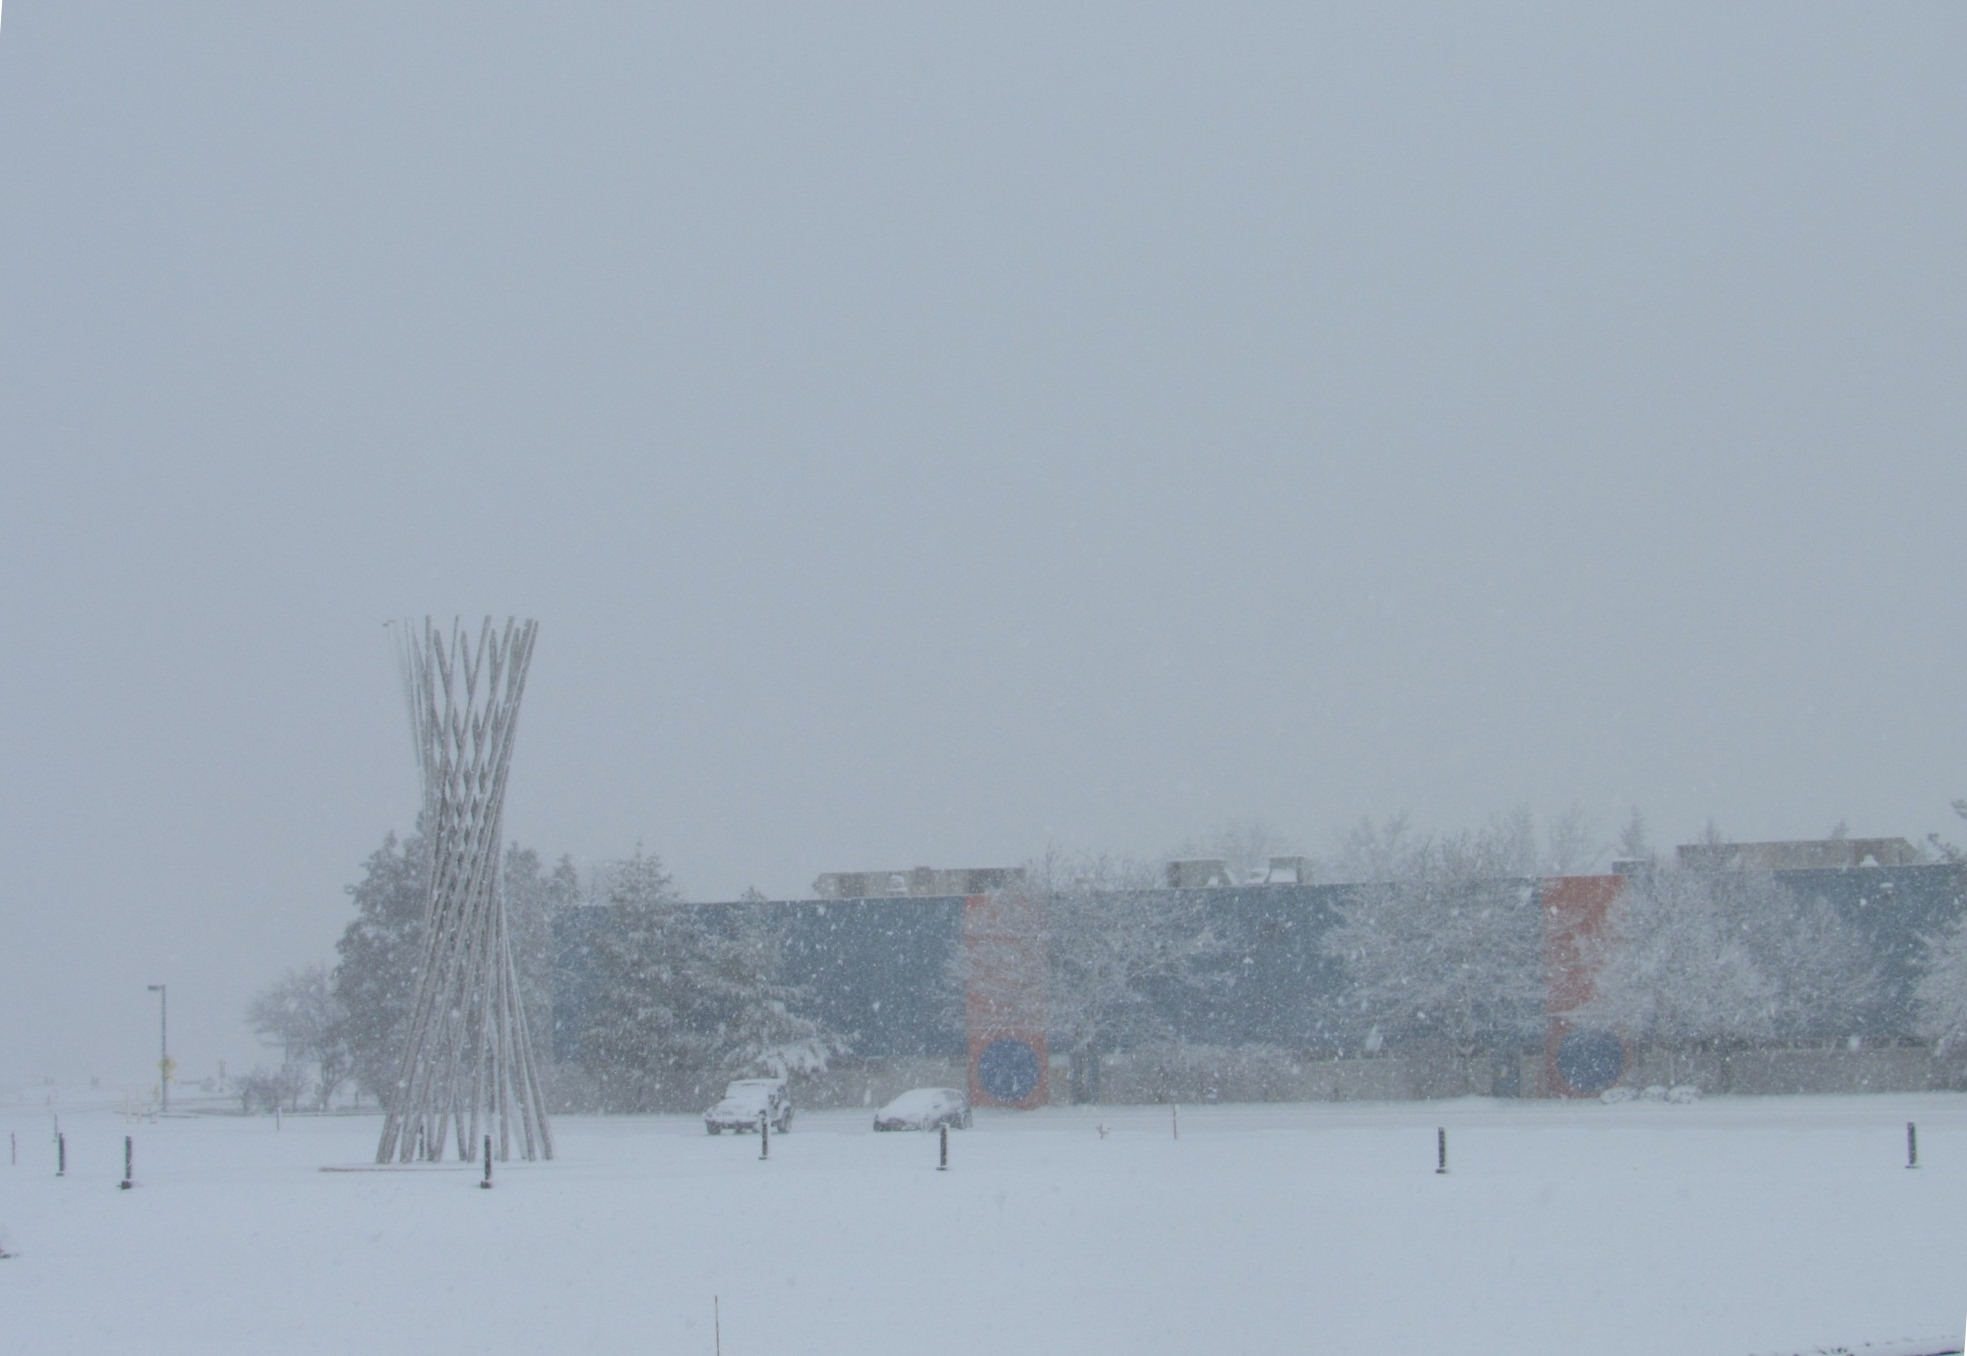 (2/3) The Technical Campus and Tractricious are in mid-April snow. nature, landscape, winter, spring, snow, sky, sculpture, Tractricious Photo: Luciano Elementi